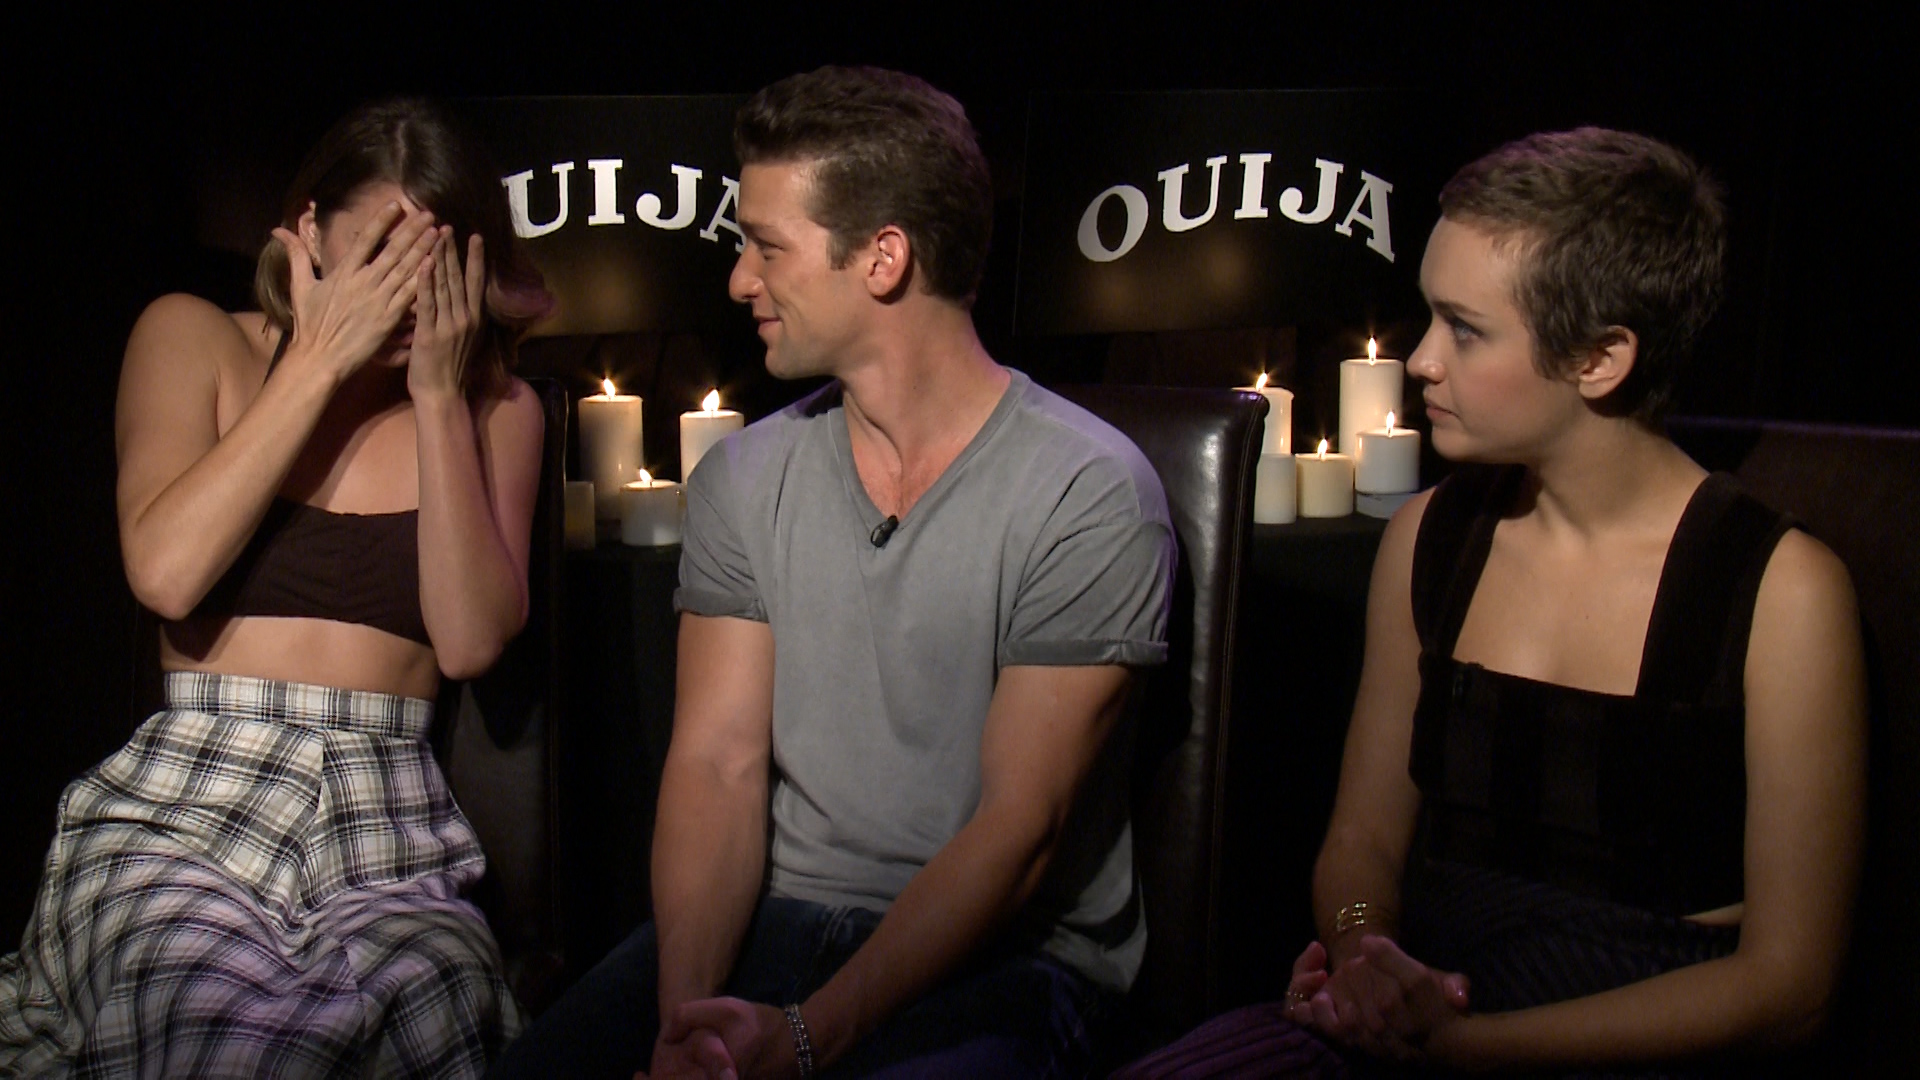 Ouija Exclusive Cast Interview Video Mandatory The village, a show about residents of a brooklyn apartment building who become each. ouija exclusive cast interview video